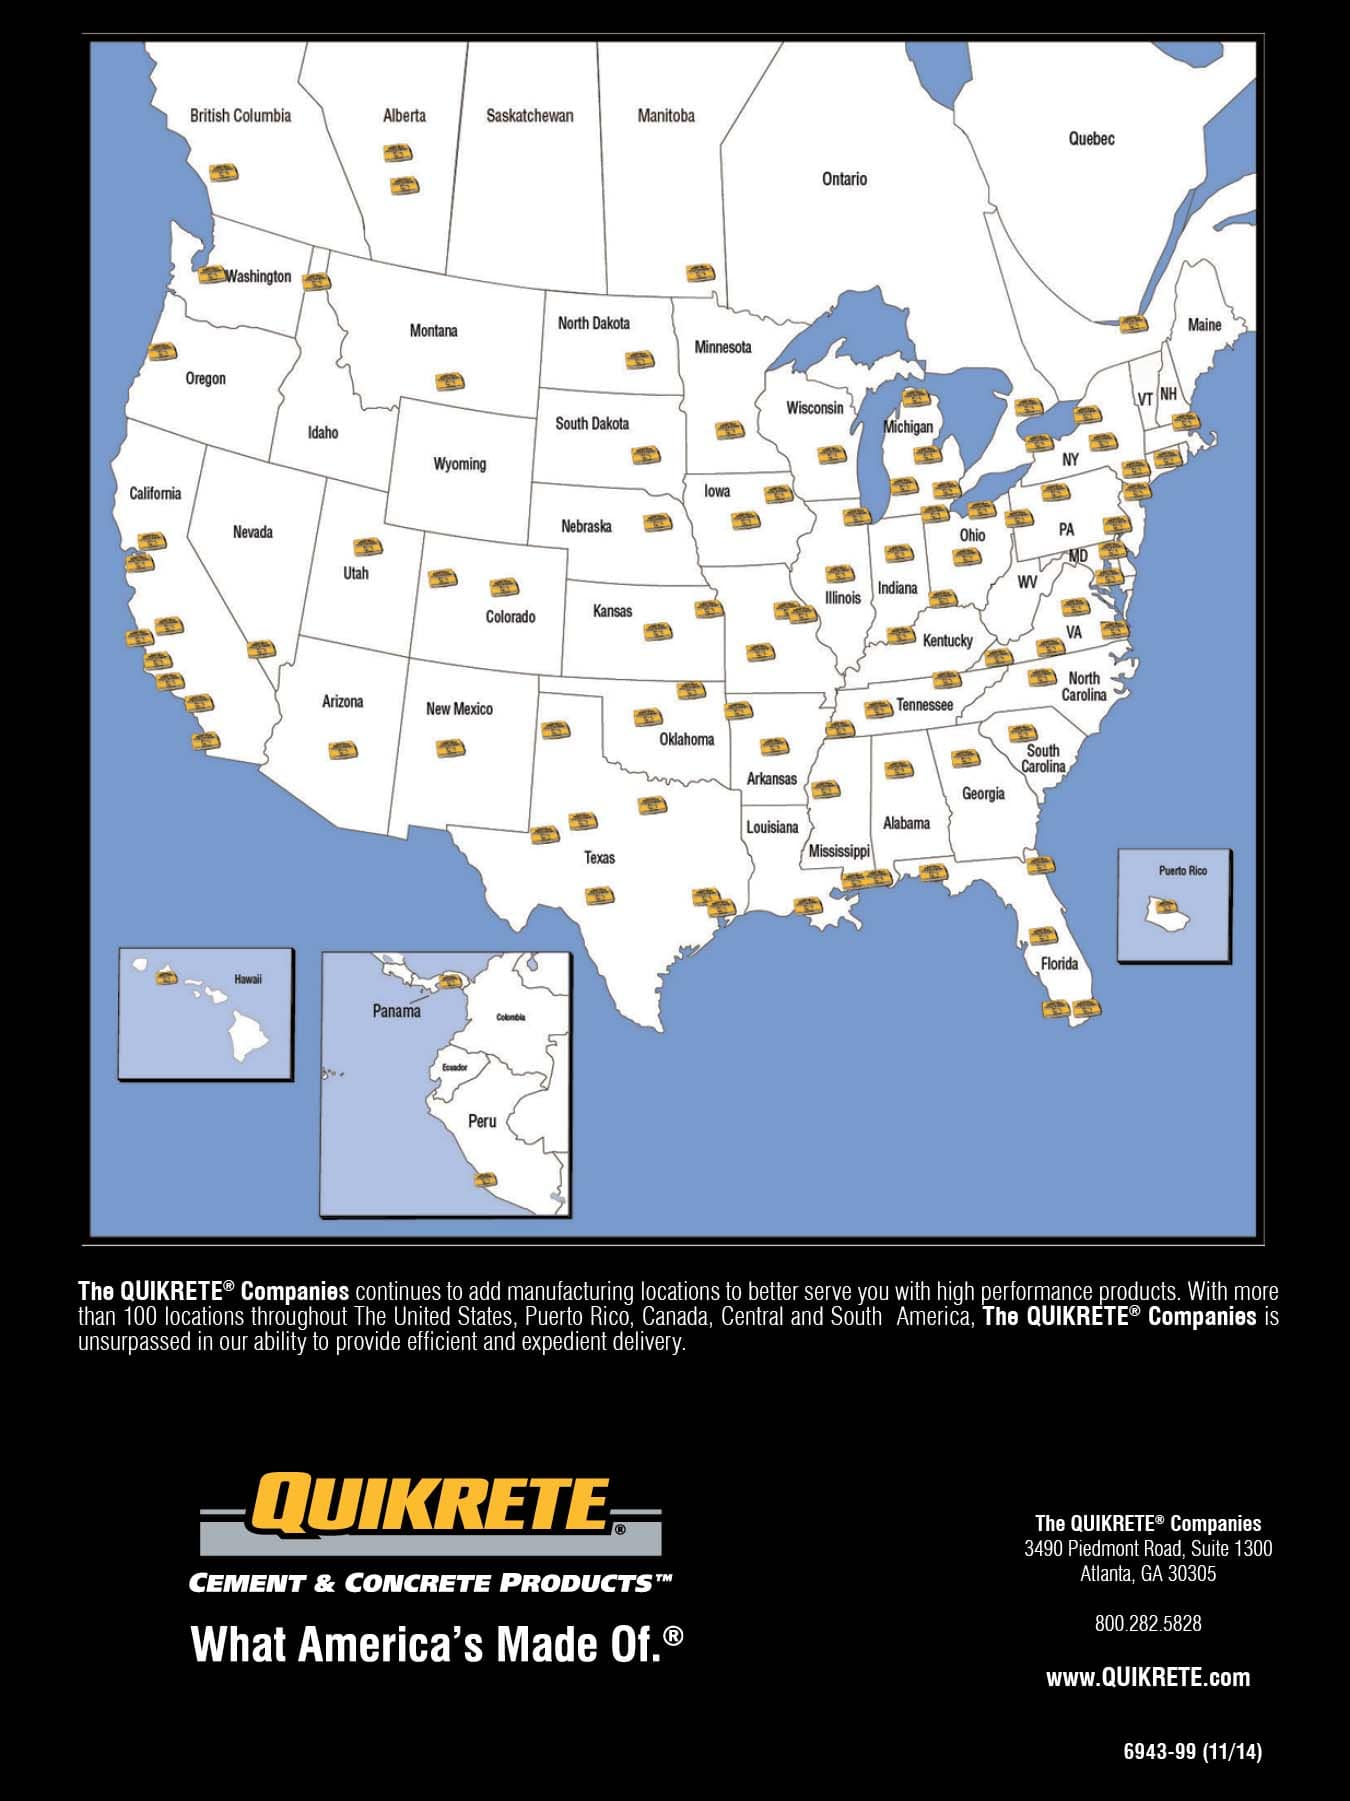 Quikrete - Product Guide